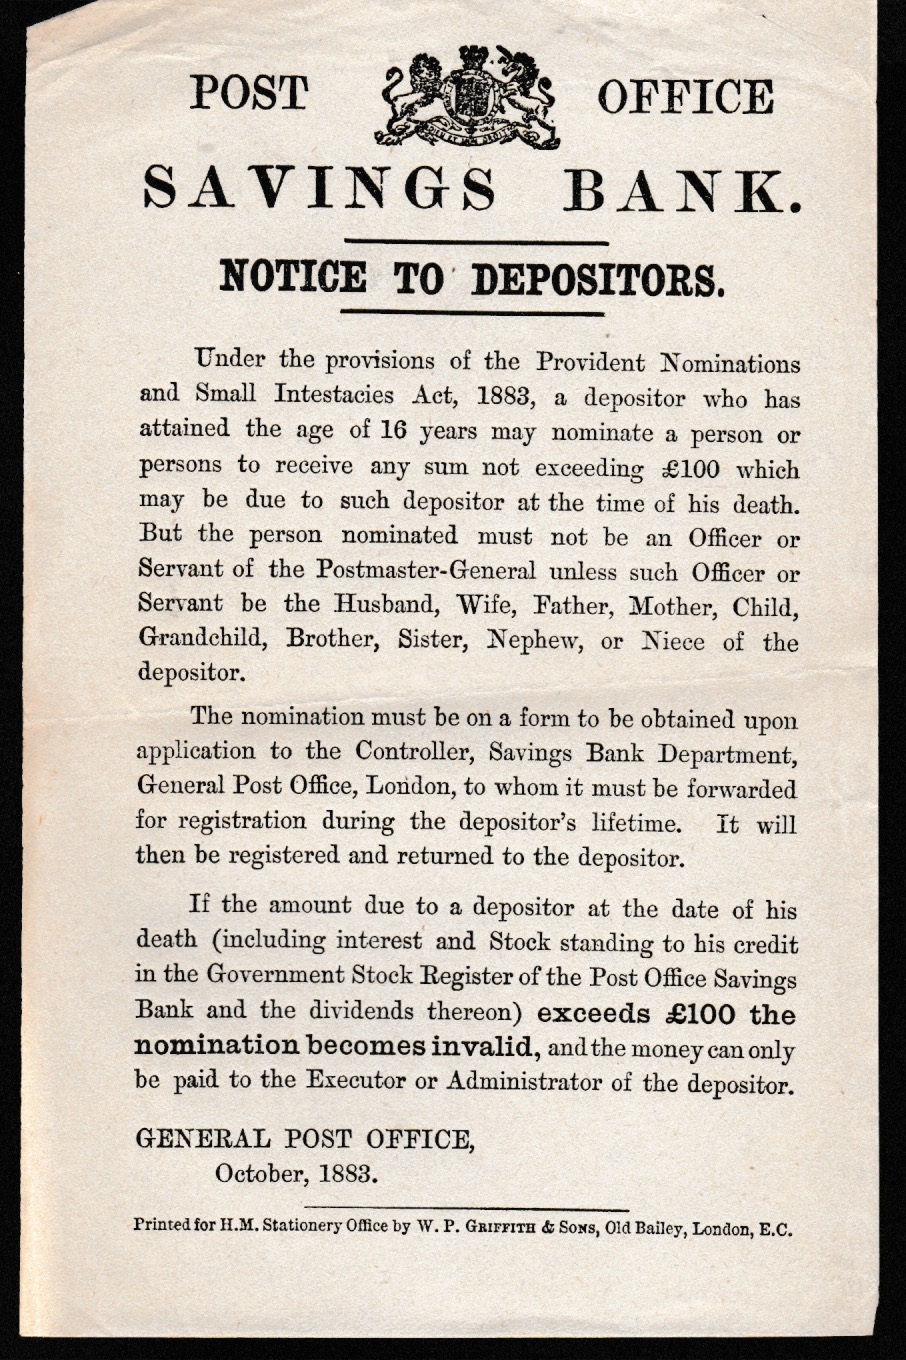 G.B. - Acts & Notices - Image 4 of 6